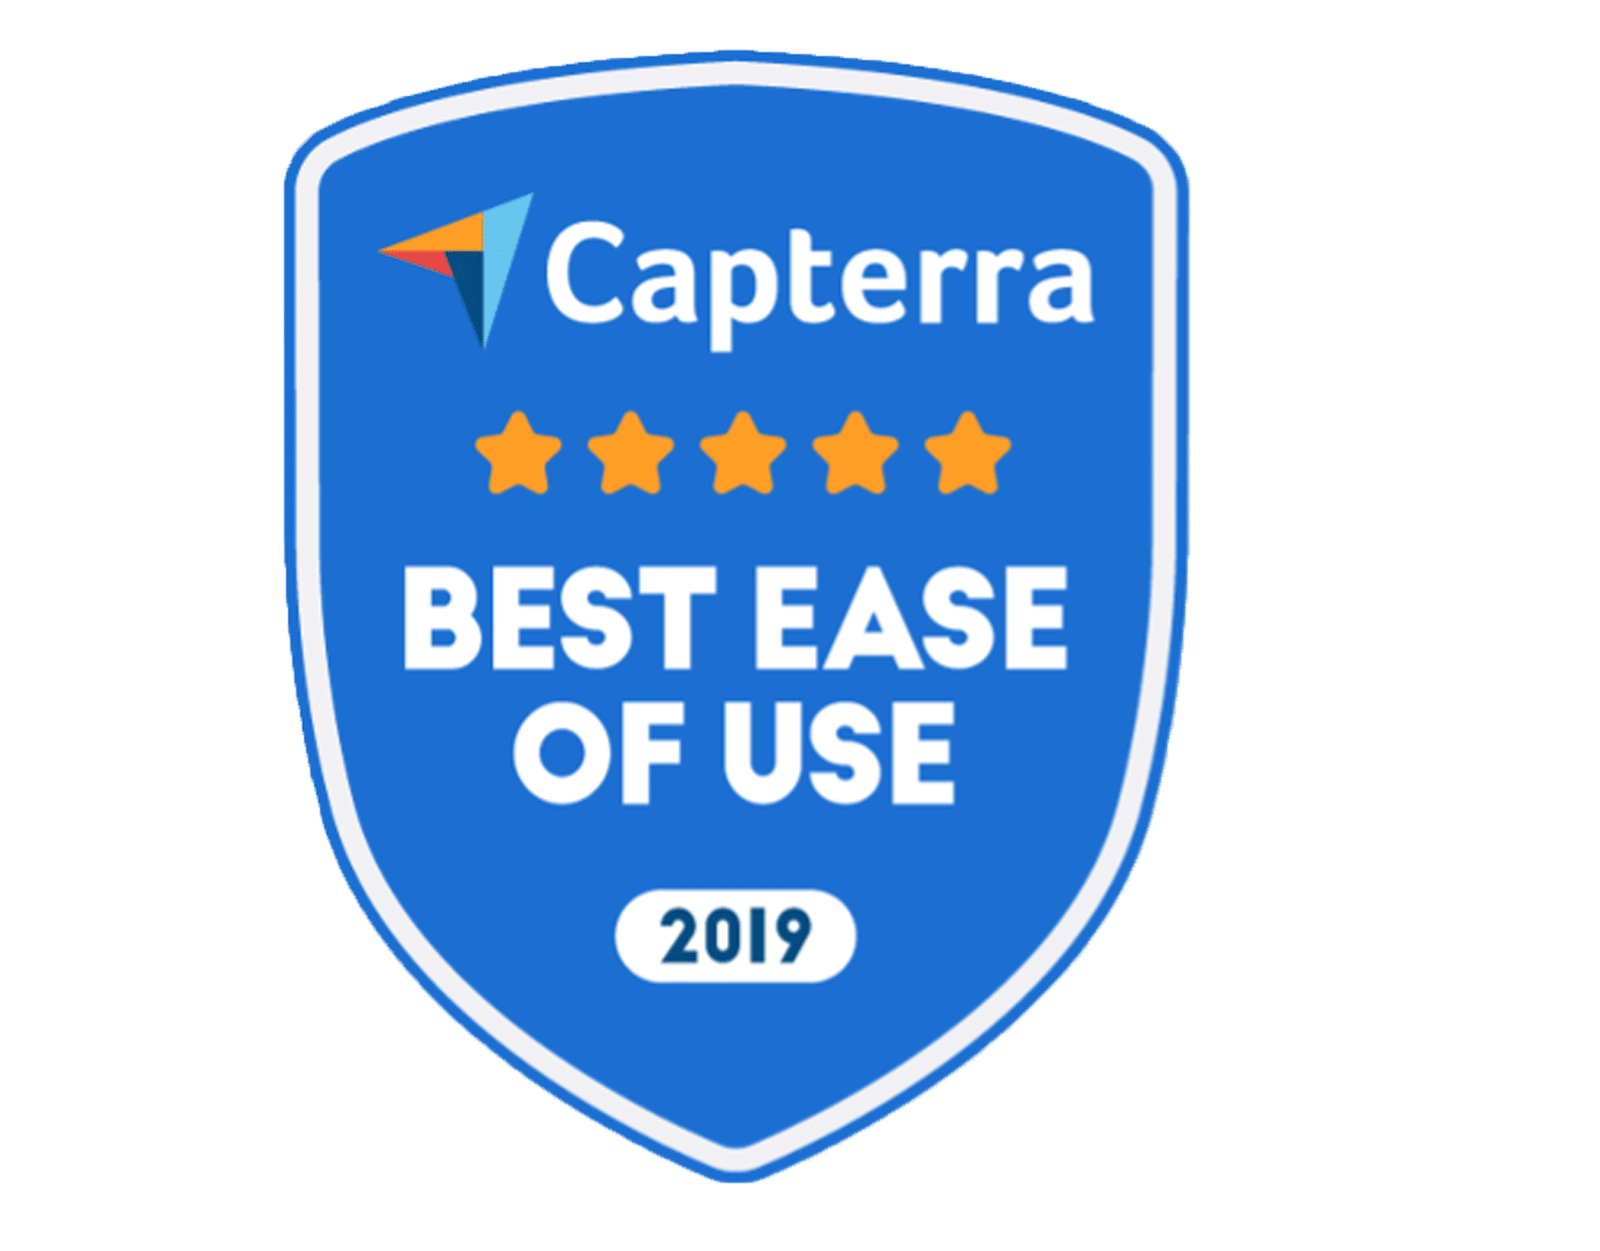 Capterra Best Ease Of Use